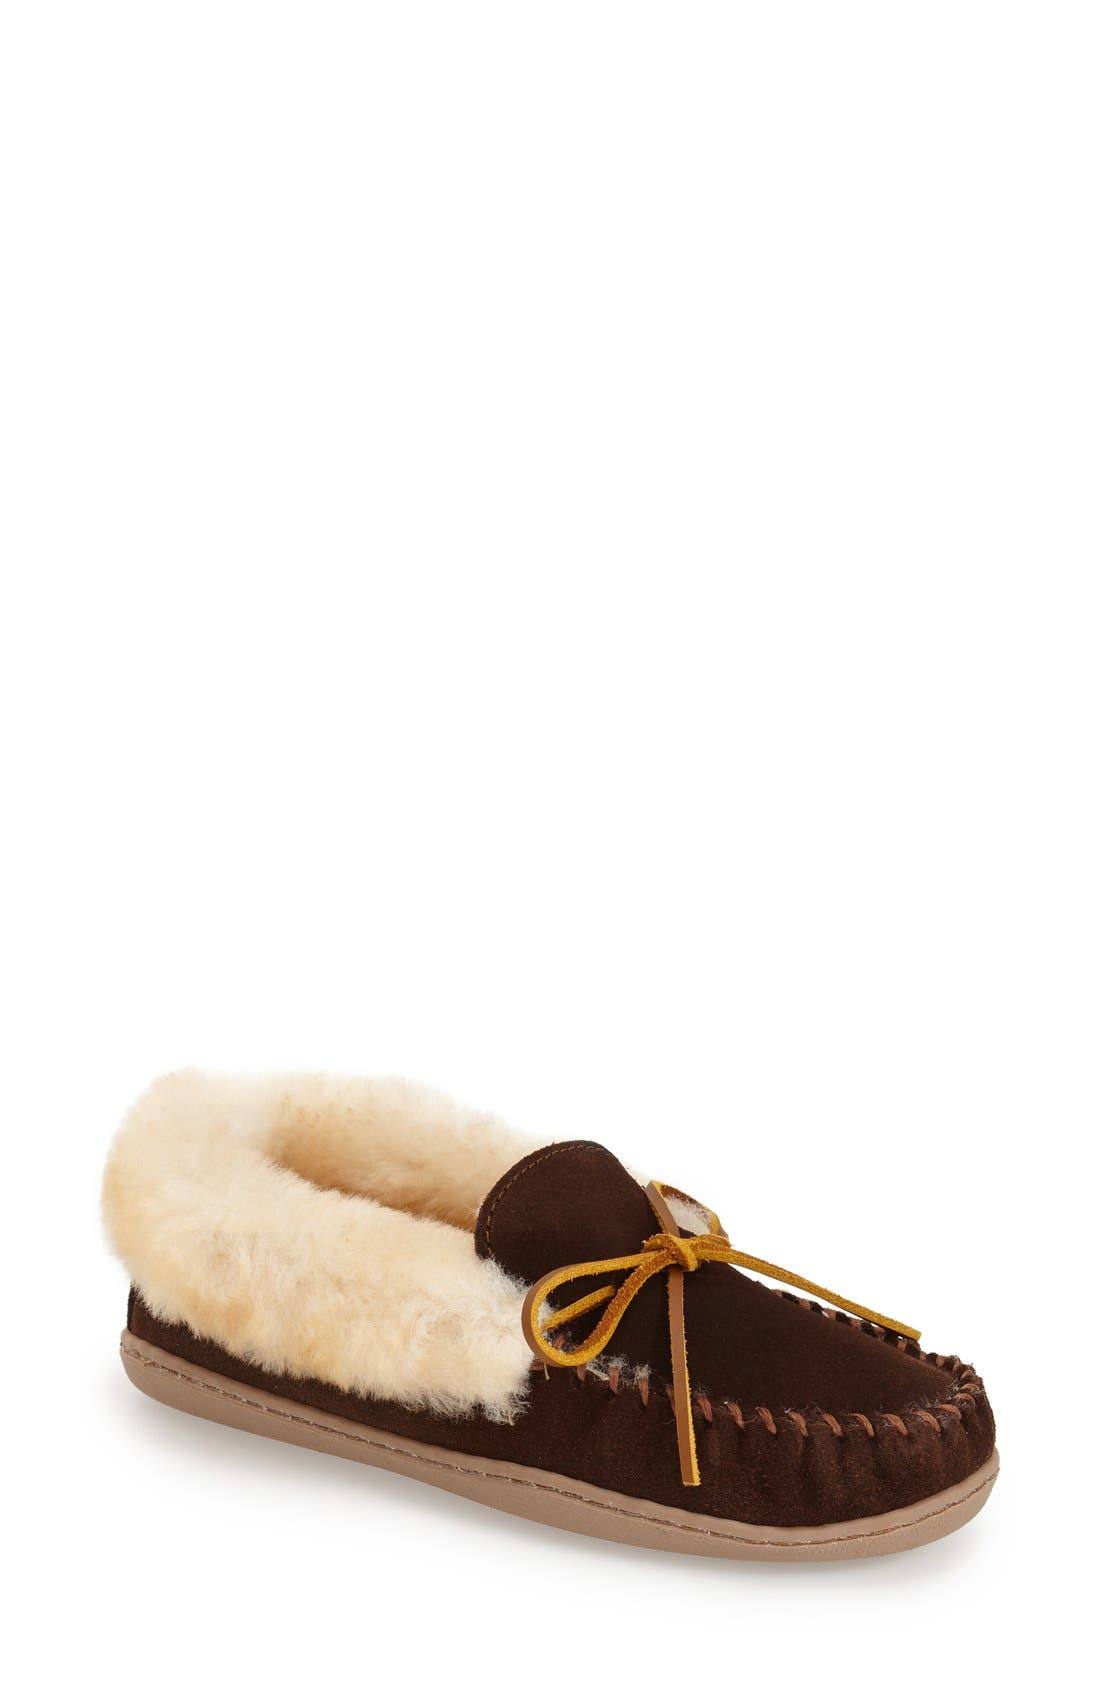 'Alpine' Genuine Shearling Moccasin Slipper,                         Main,                         color, CHOCOLATE SUEDE